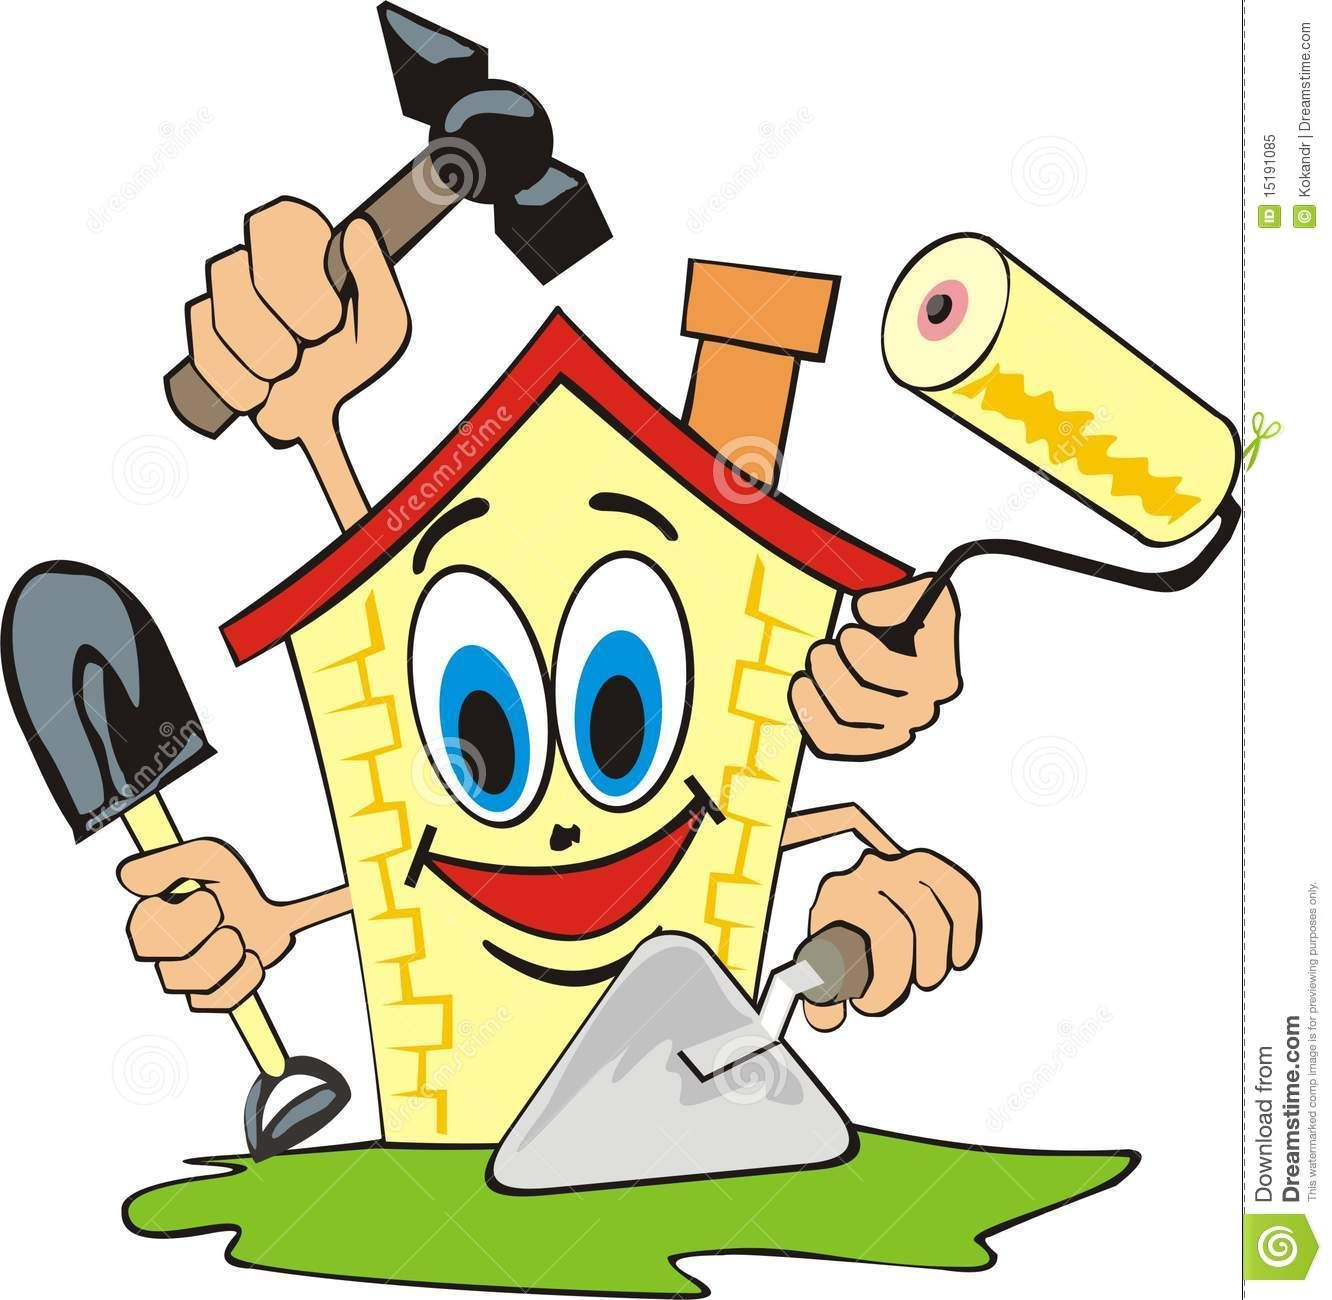 All graphics newest royalty free stock photos stock illustrations - Home Repair Royalty Free Stock Photo Image 15191085